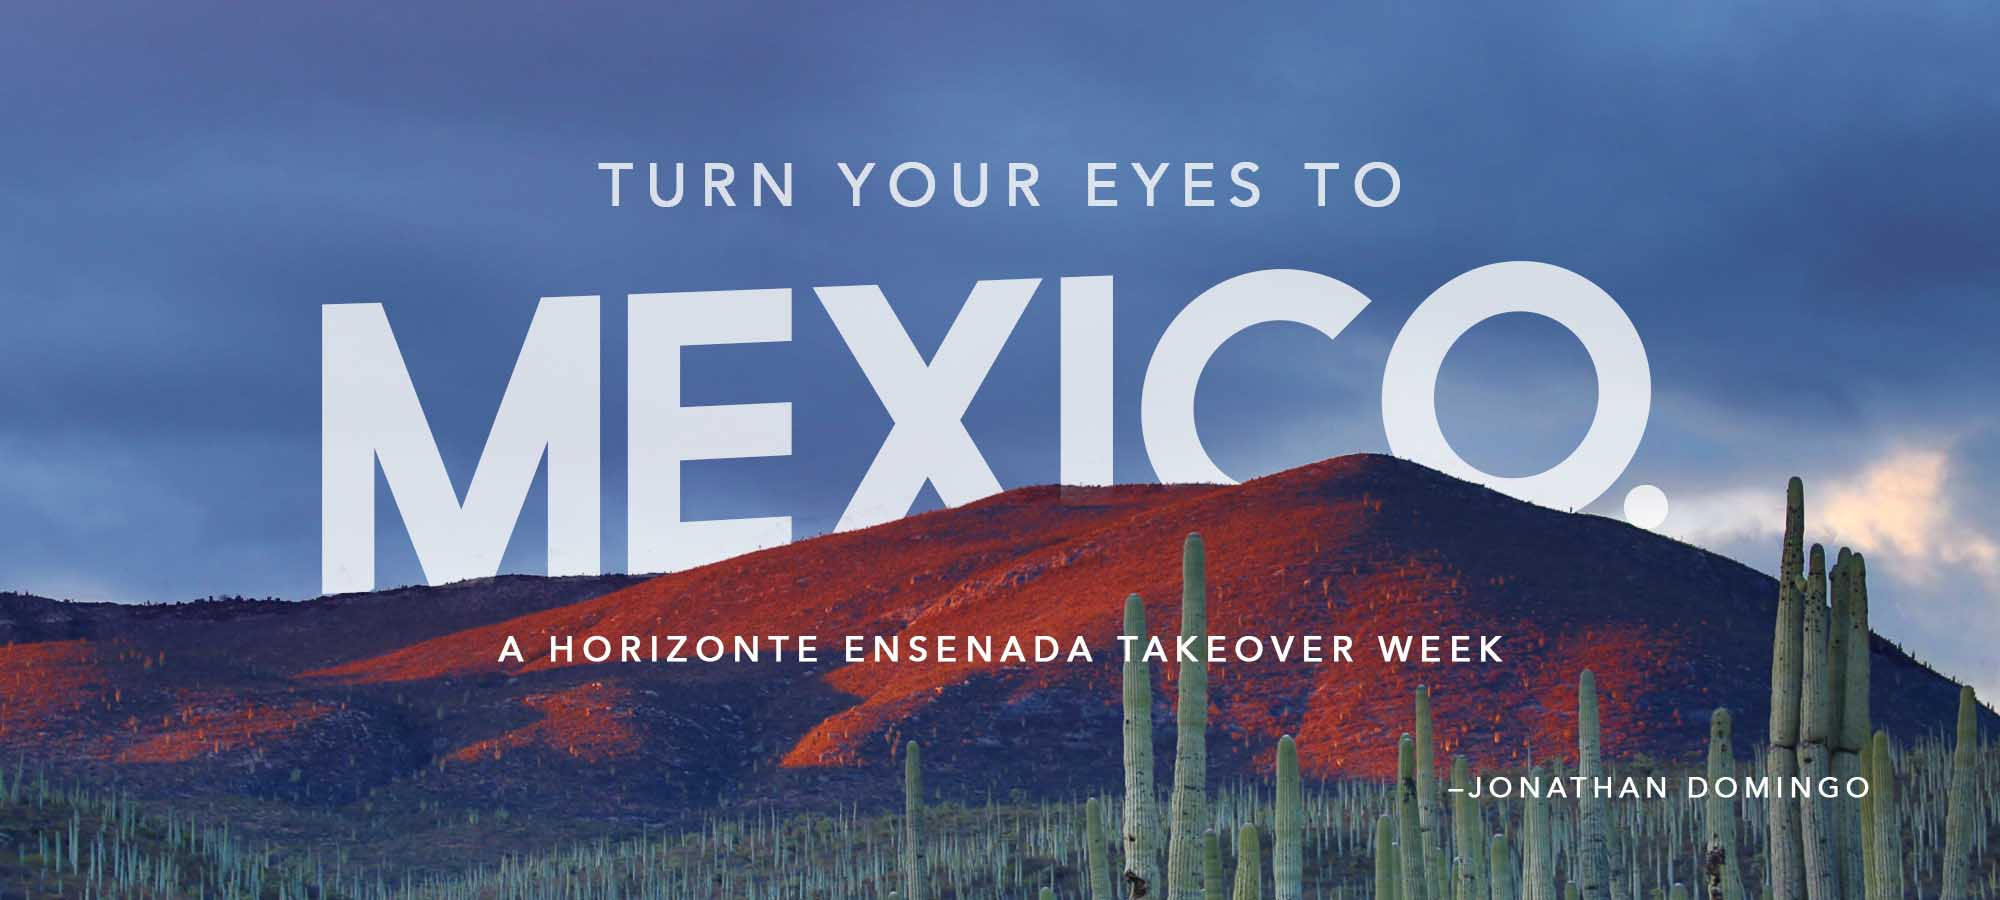 Turn your Eyes to Mexico: A Horizonte Ensenada Takeover Week